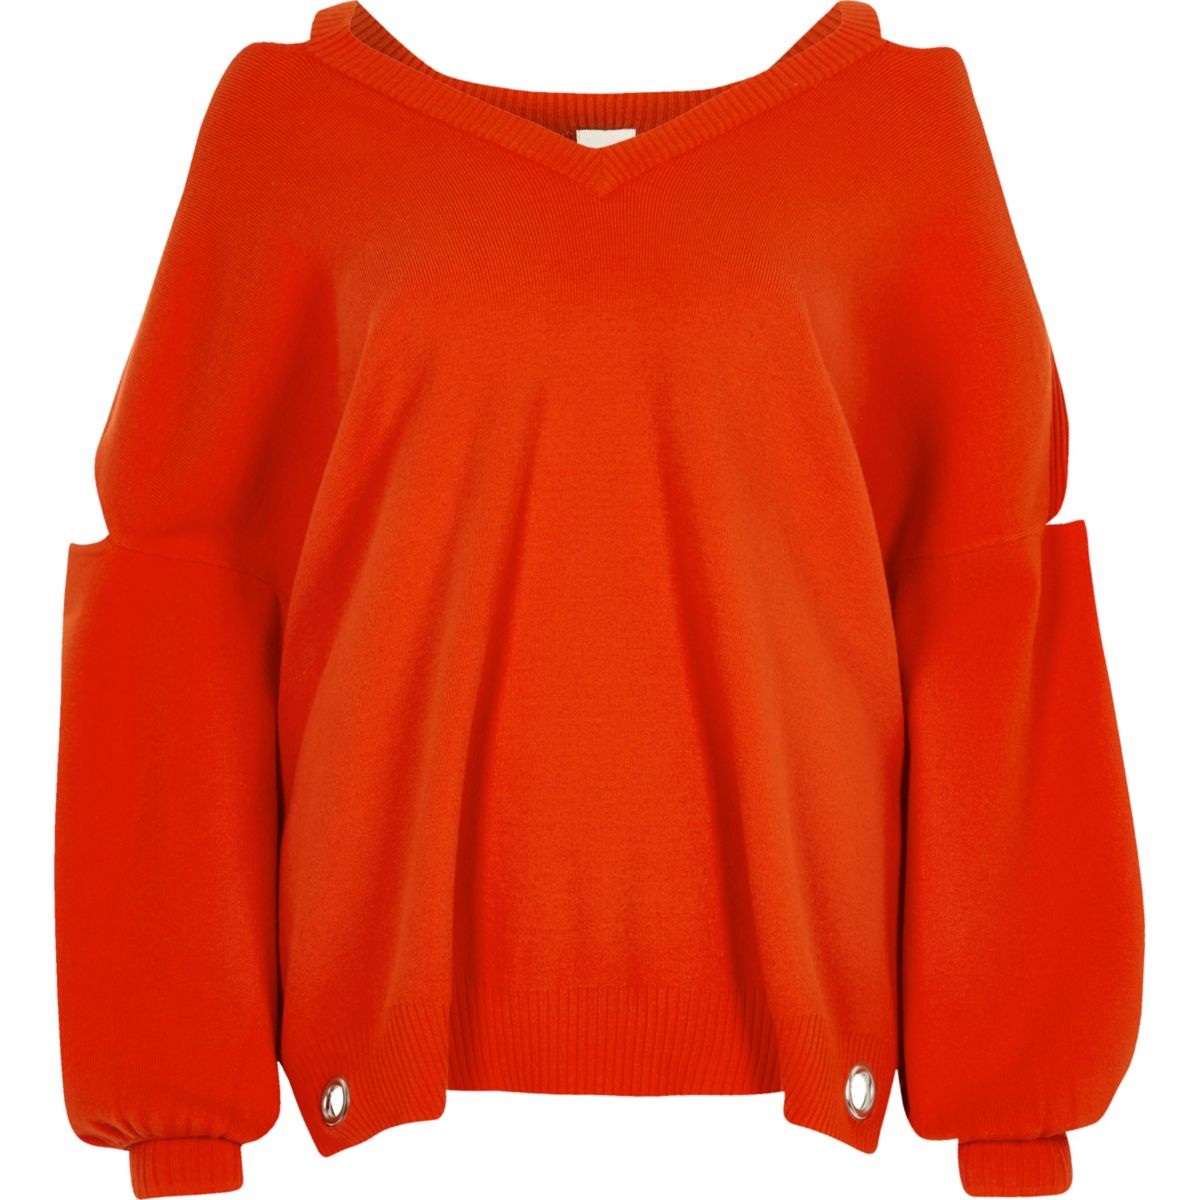 Red knit cut out sweater